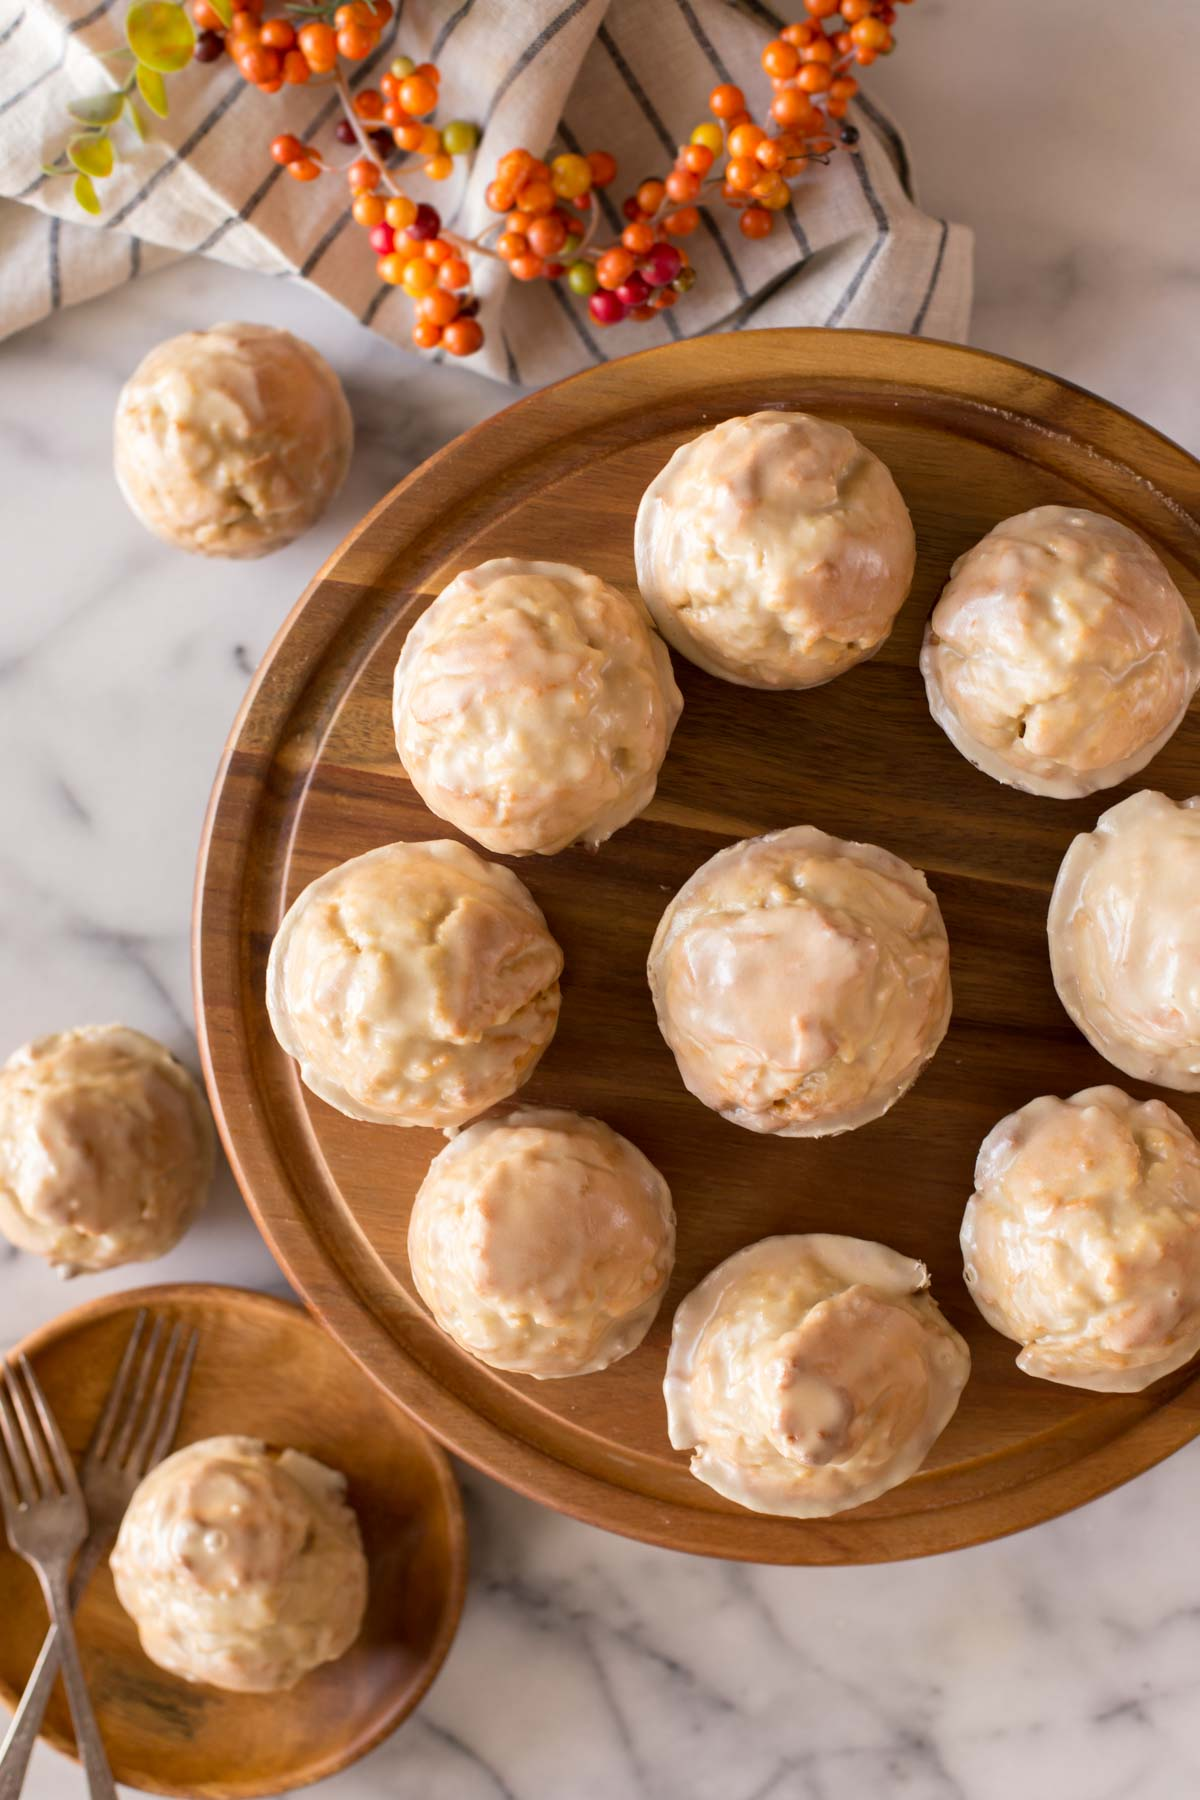 Maple Glazed Donut Muffins on a wood cake stand, with three Maple Glazed Donut Muffins sitting next to the cake stand, one of them on a wood plate with two forks.